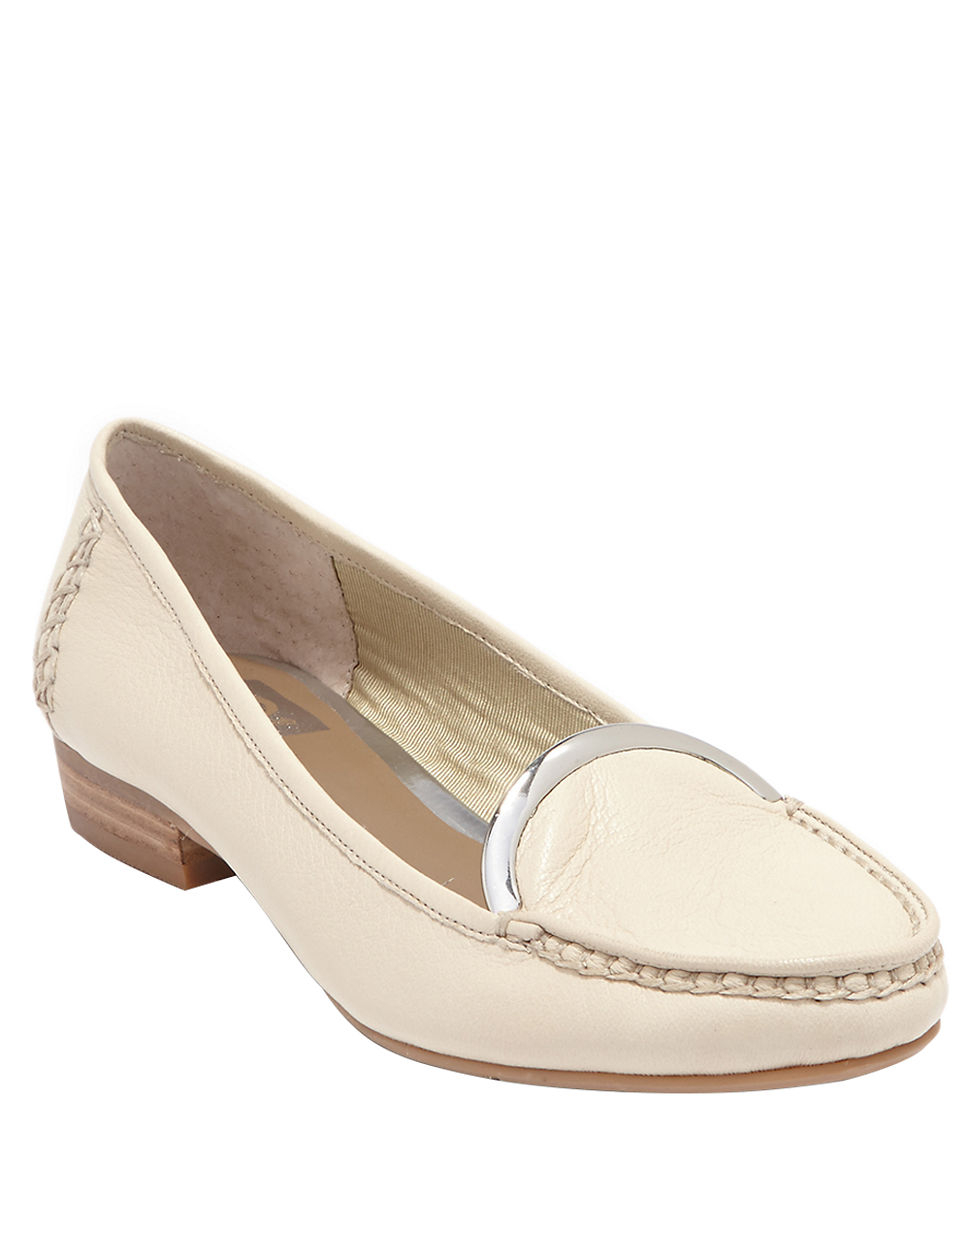 Dolce Vita Beige Leather Oxford Shoes